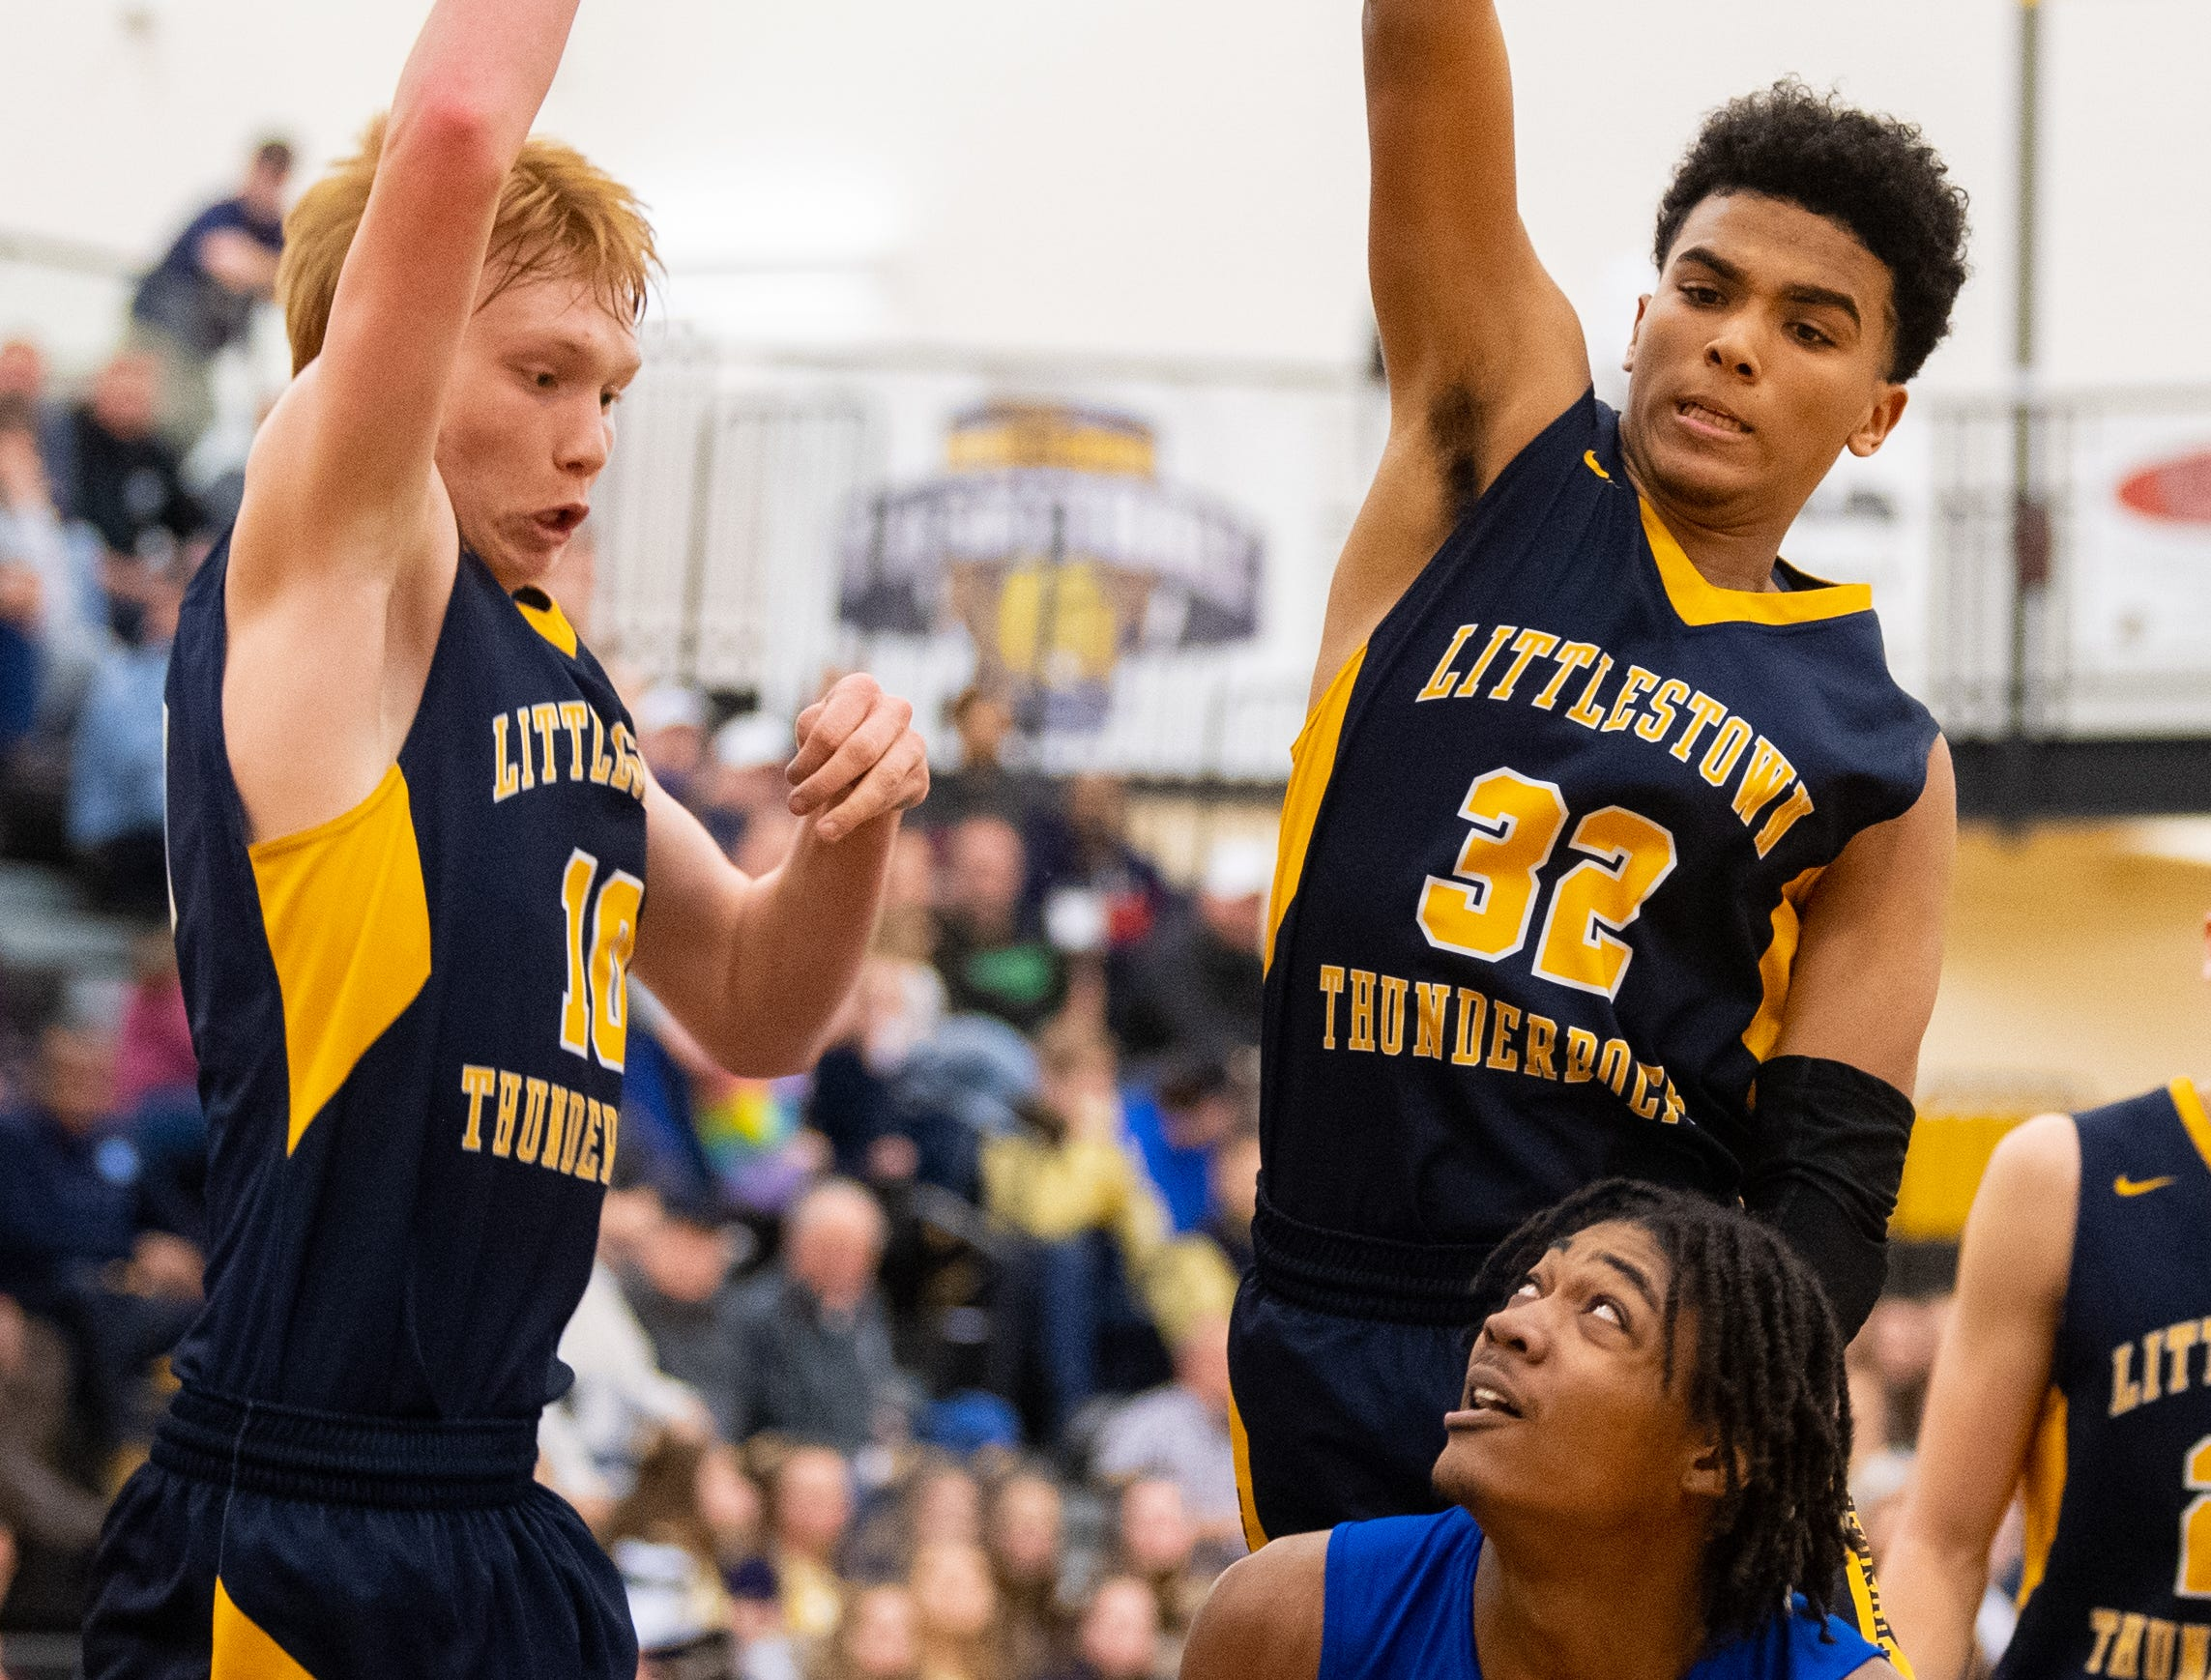 Littlestown's Dan Gazemen (10) and Jayden Weishaar (32) attempt to block Branden Mutunga (11) of York High during the YAIAA boys' basketball semifinals, Wednesday, February 13, 2019 at Red Lion Area High School. The Bearcats defeated the Thunderbolts 74 to 51.